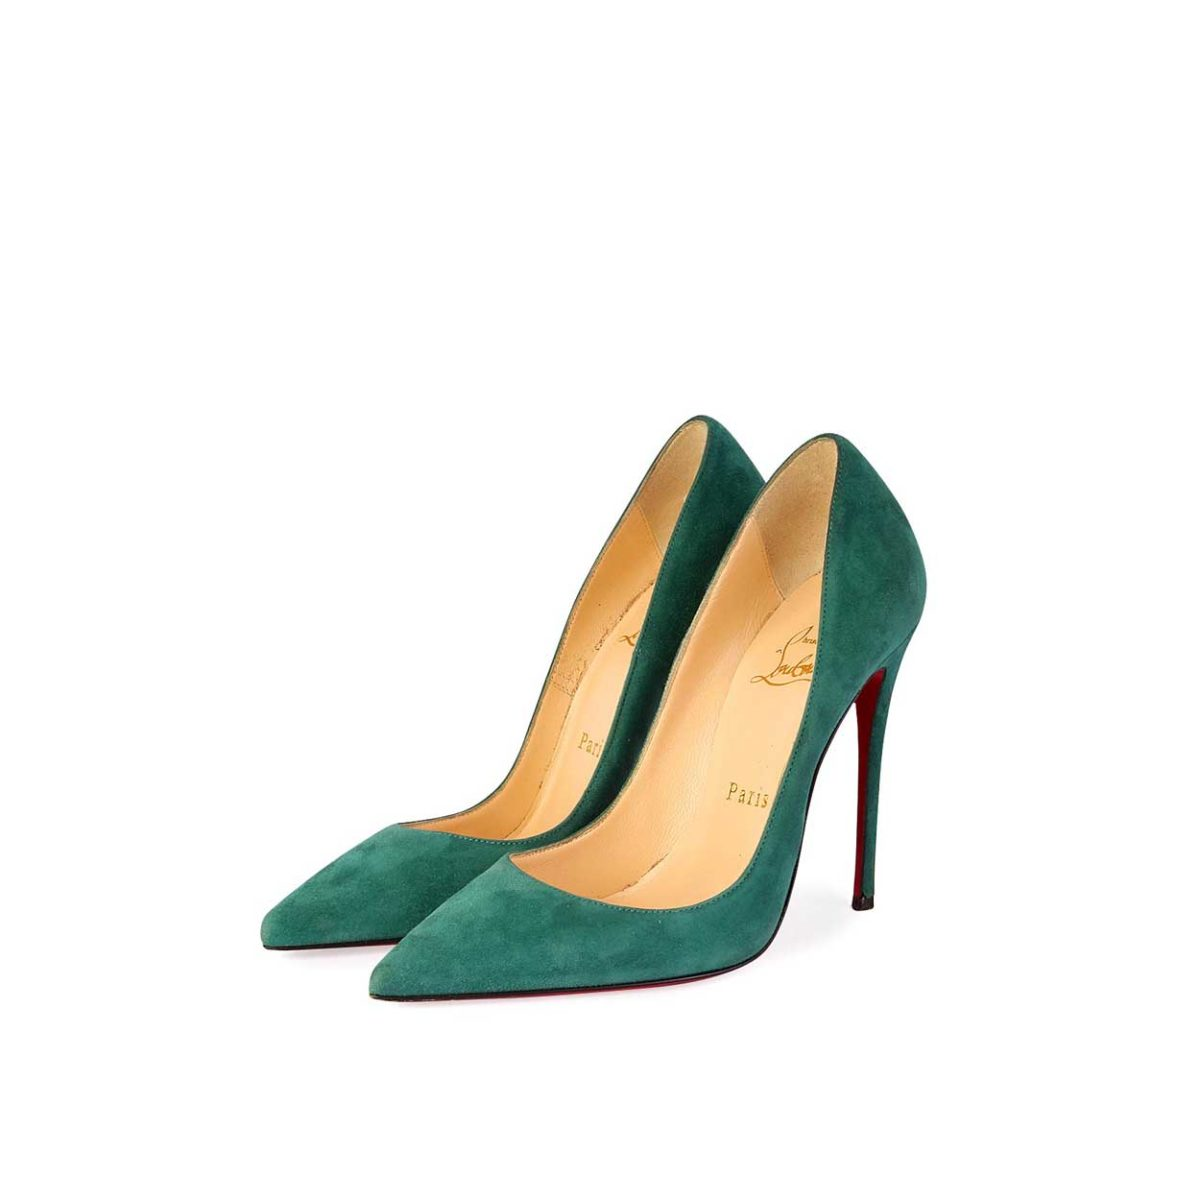 online store d1f08 d8f6f CHRISTIAN LOUBOUTIN Suede So Kate 120 Pumps Green - S: 35.5 (3)